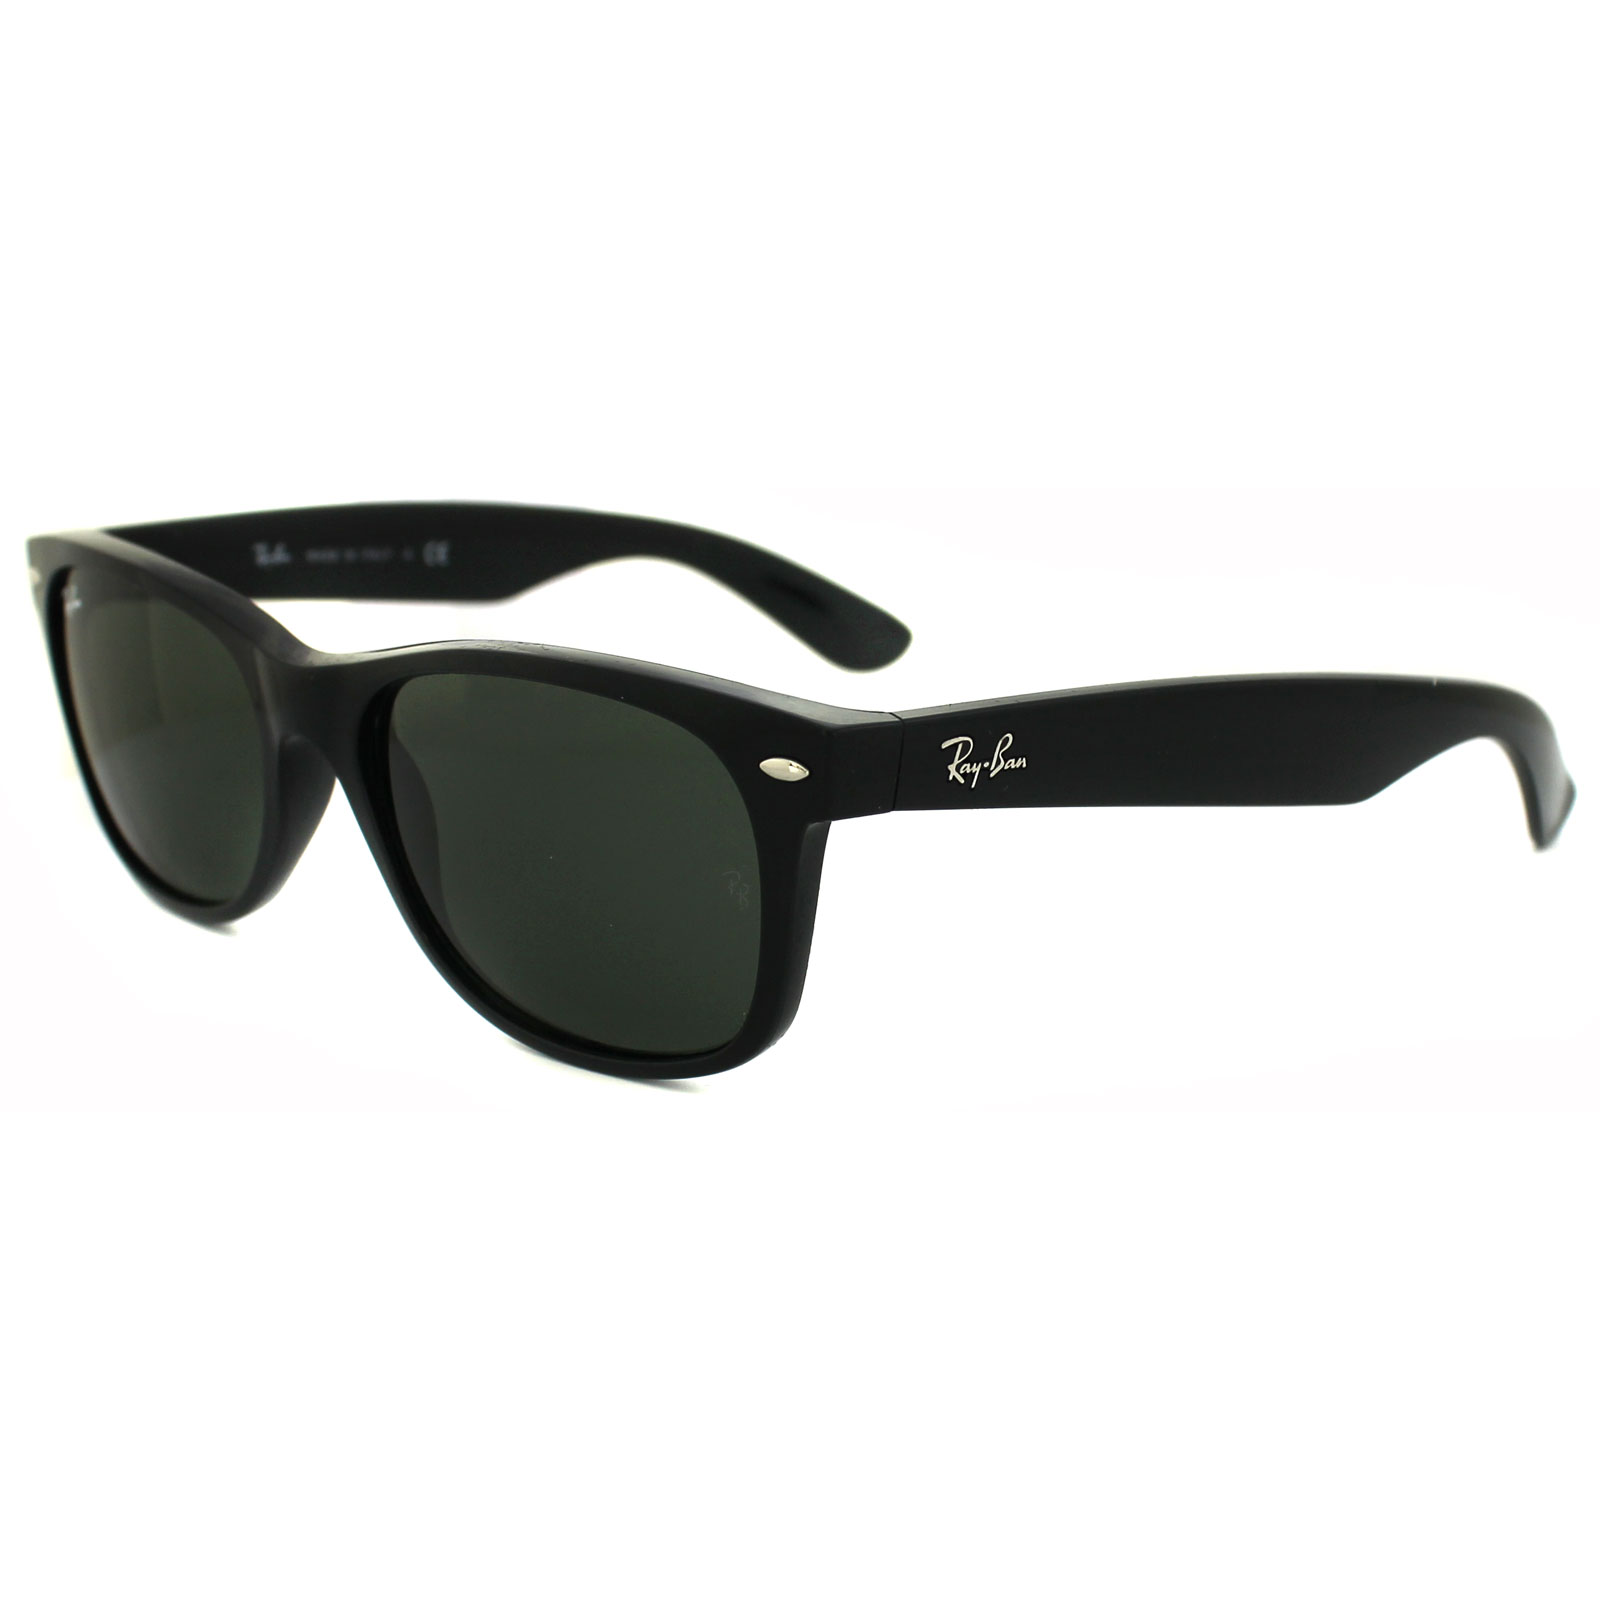 81ef27f5e9b Cheap Ray-Ban New Wayfarer 2132 Sunglasses - Discounted Sunglasses